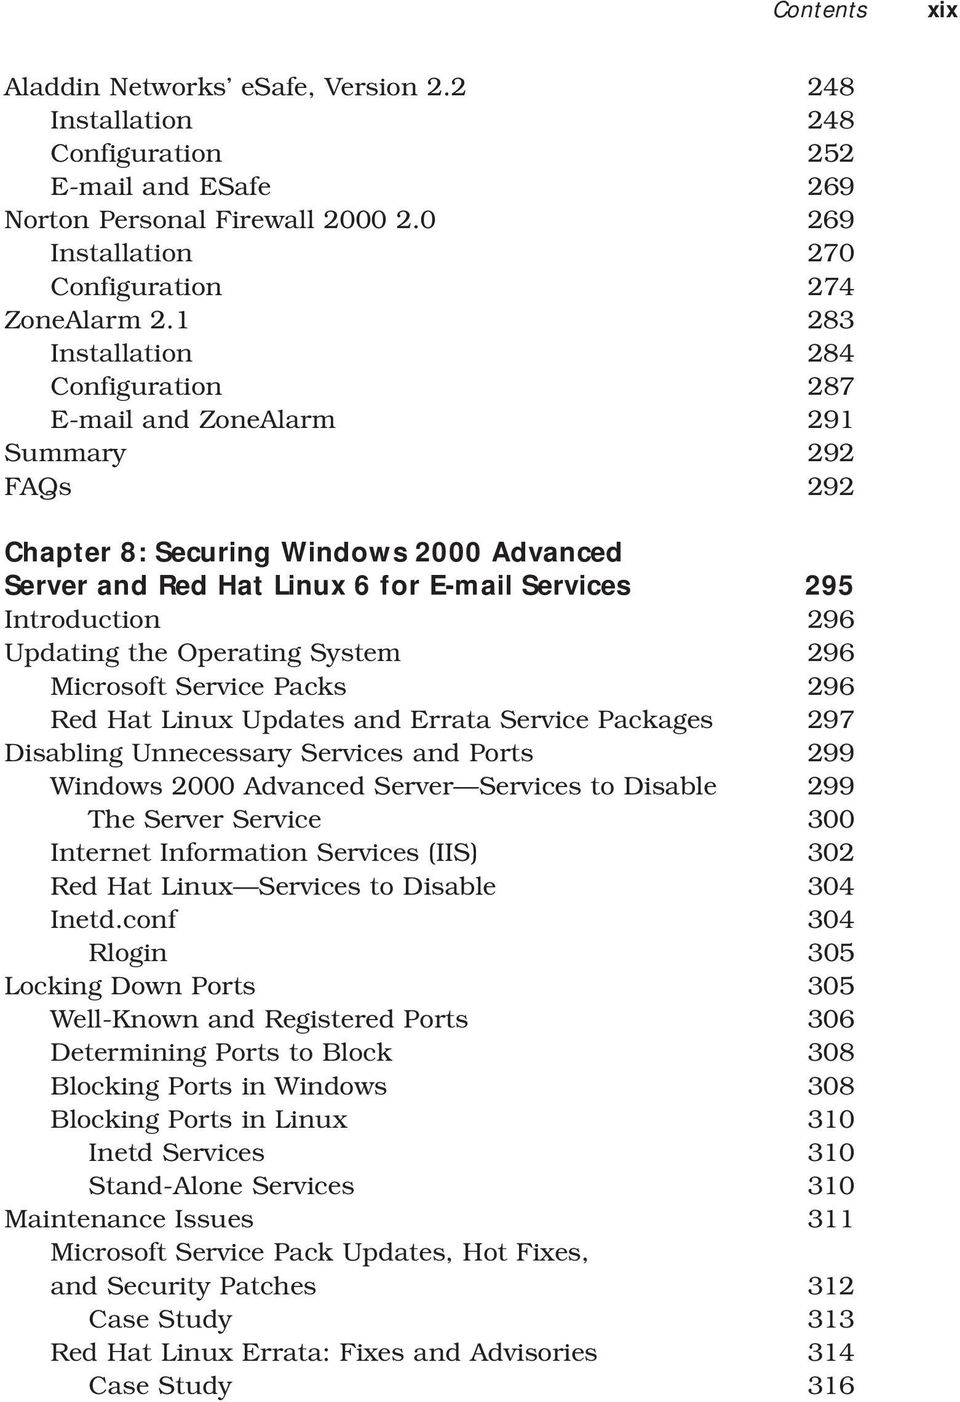 Updating the Operating System 296 Microsoft Service Packs 296 Red Hat Linux Updates and Errata Service Packages 297 Disabling Unnecessary Services and Ports 299 Windows 2000 Advanced Server Services